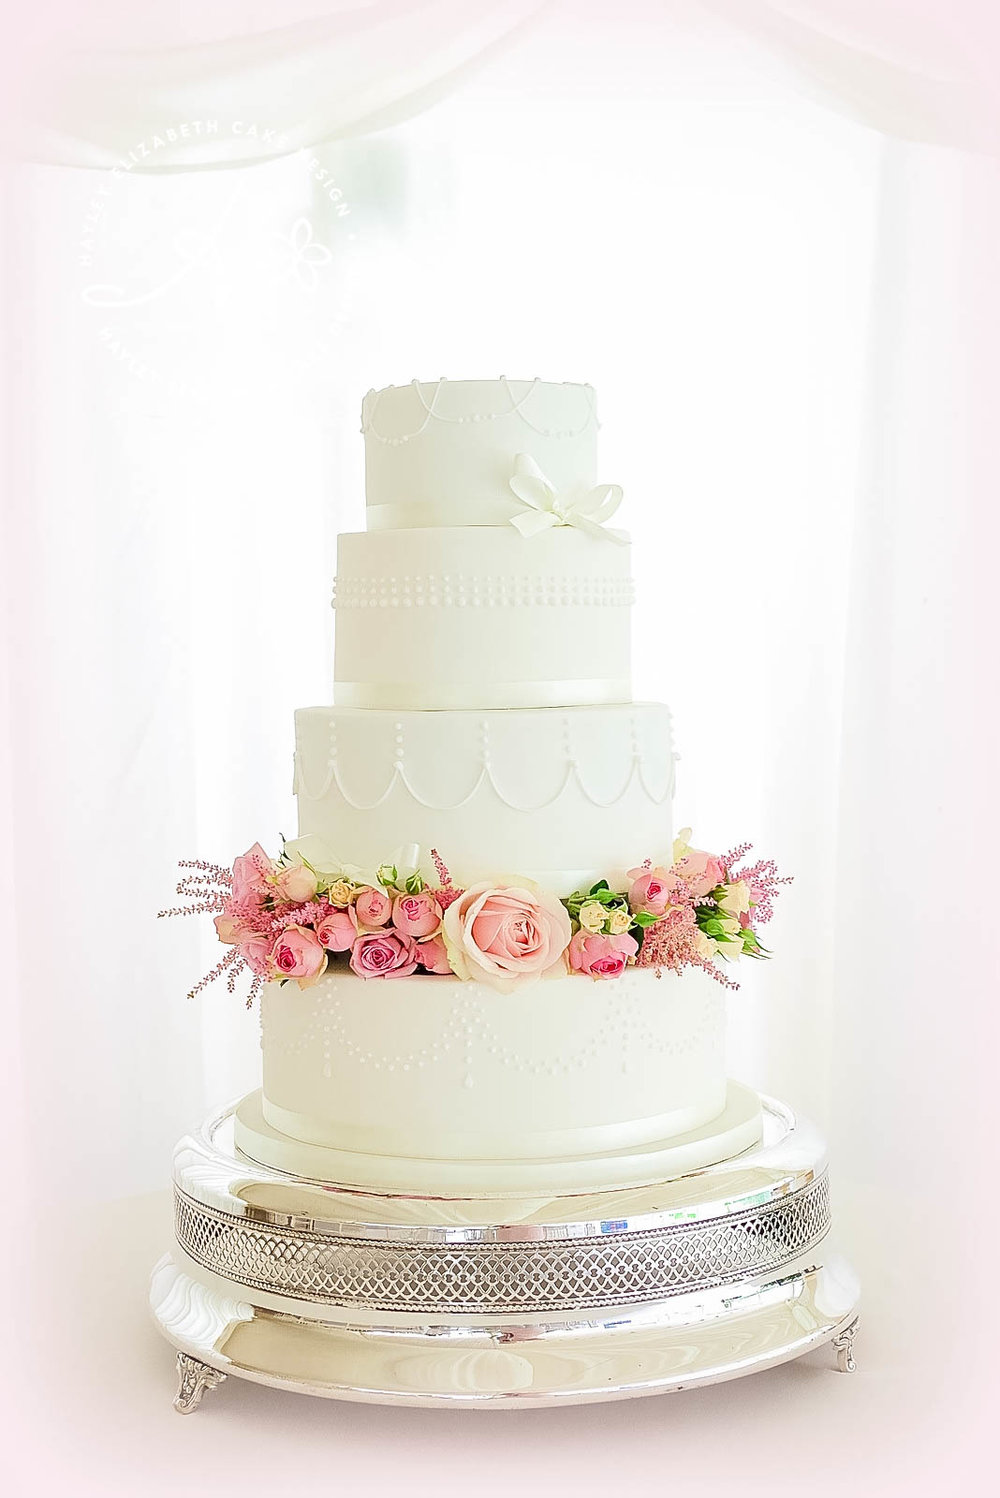 all-white-weddingcake-with-fresh-flowers.jpg